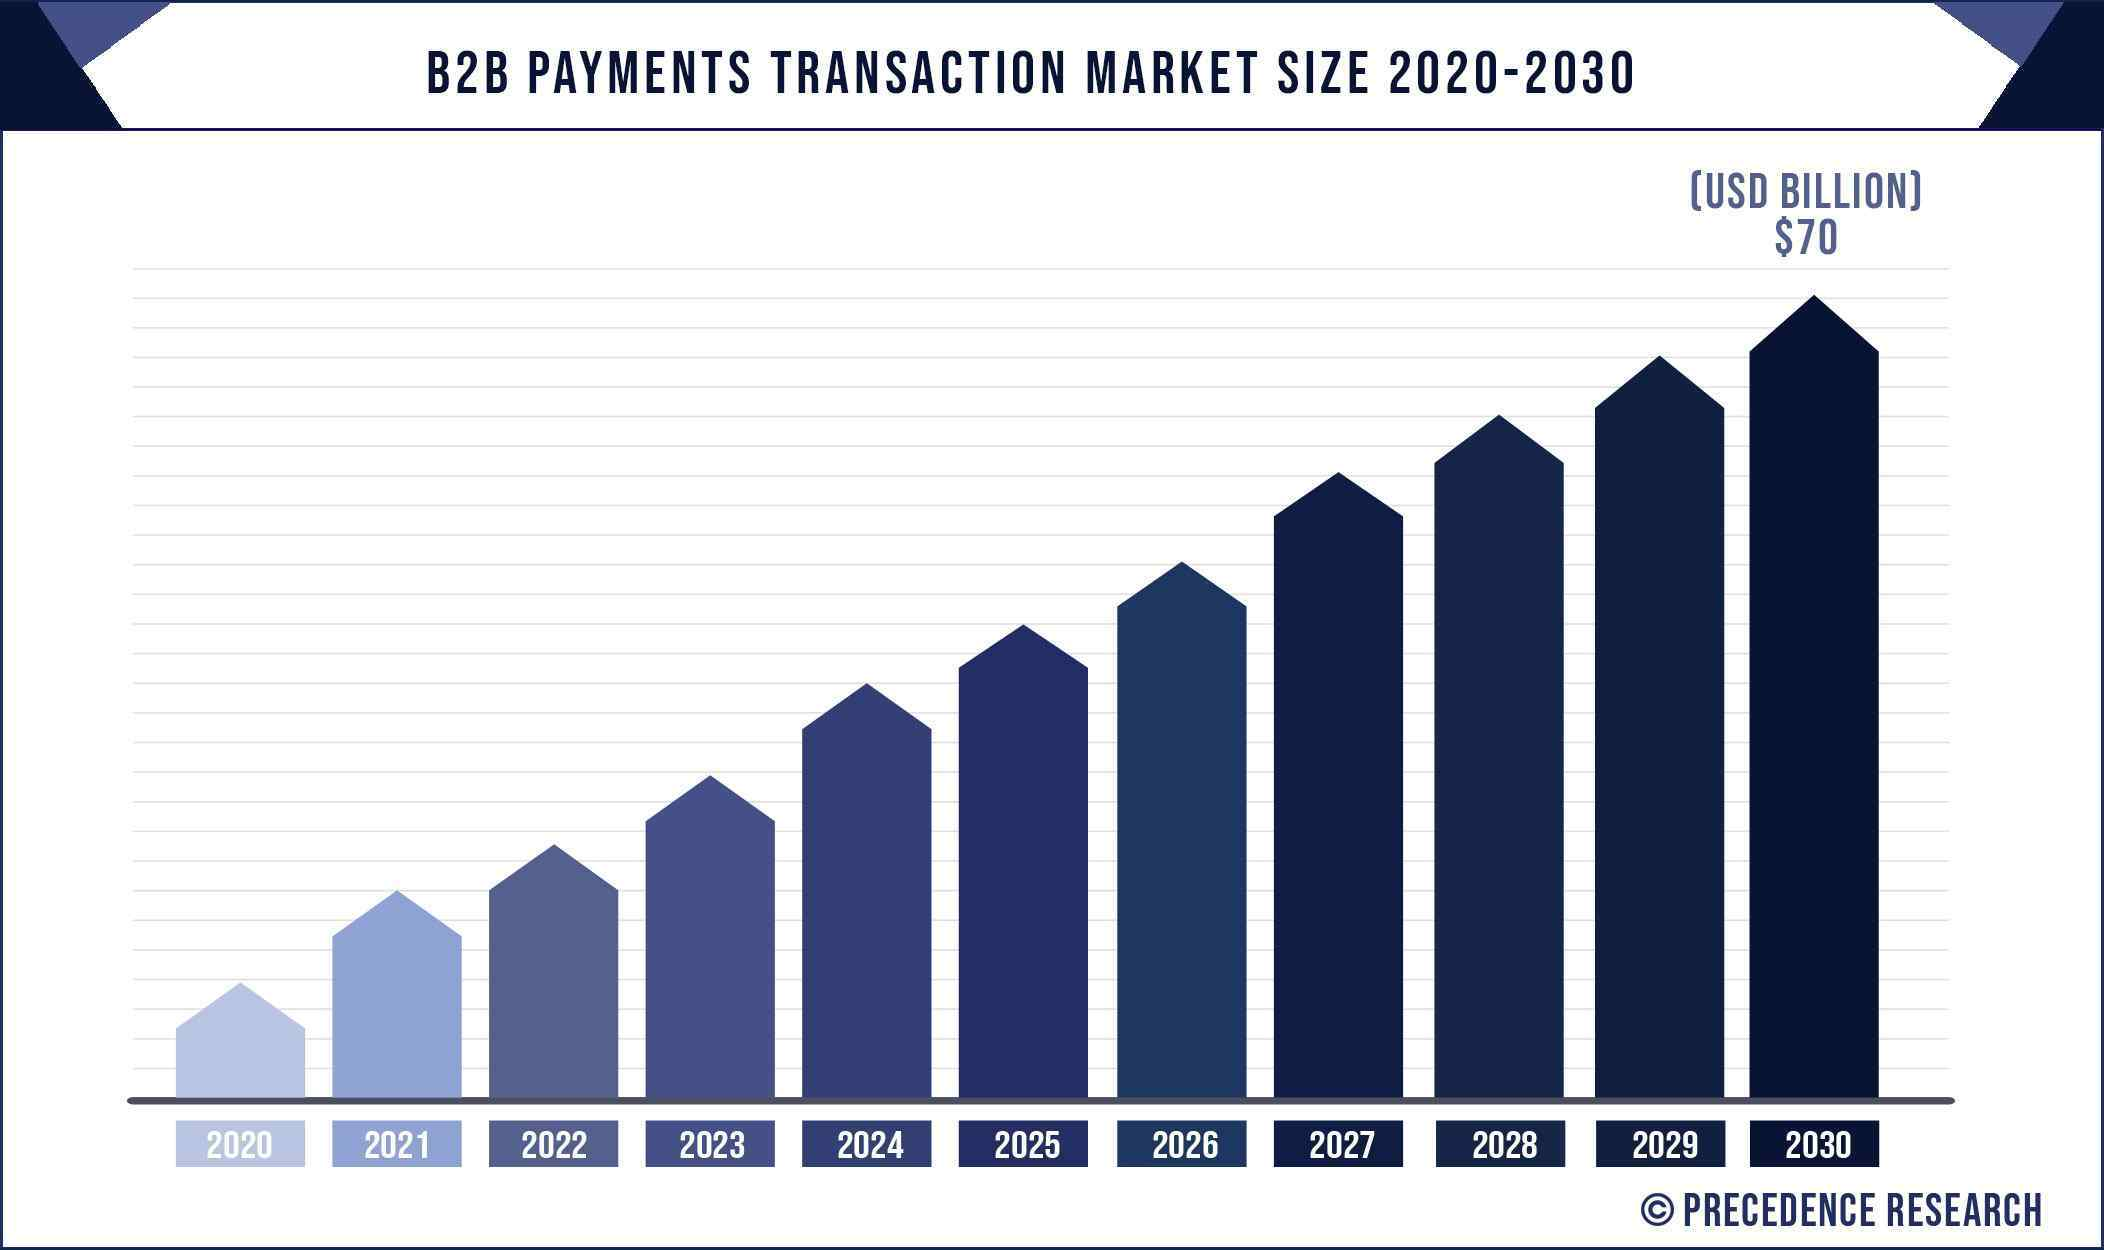 B2B Payments Transaction Market Size 2020 to 2030